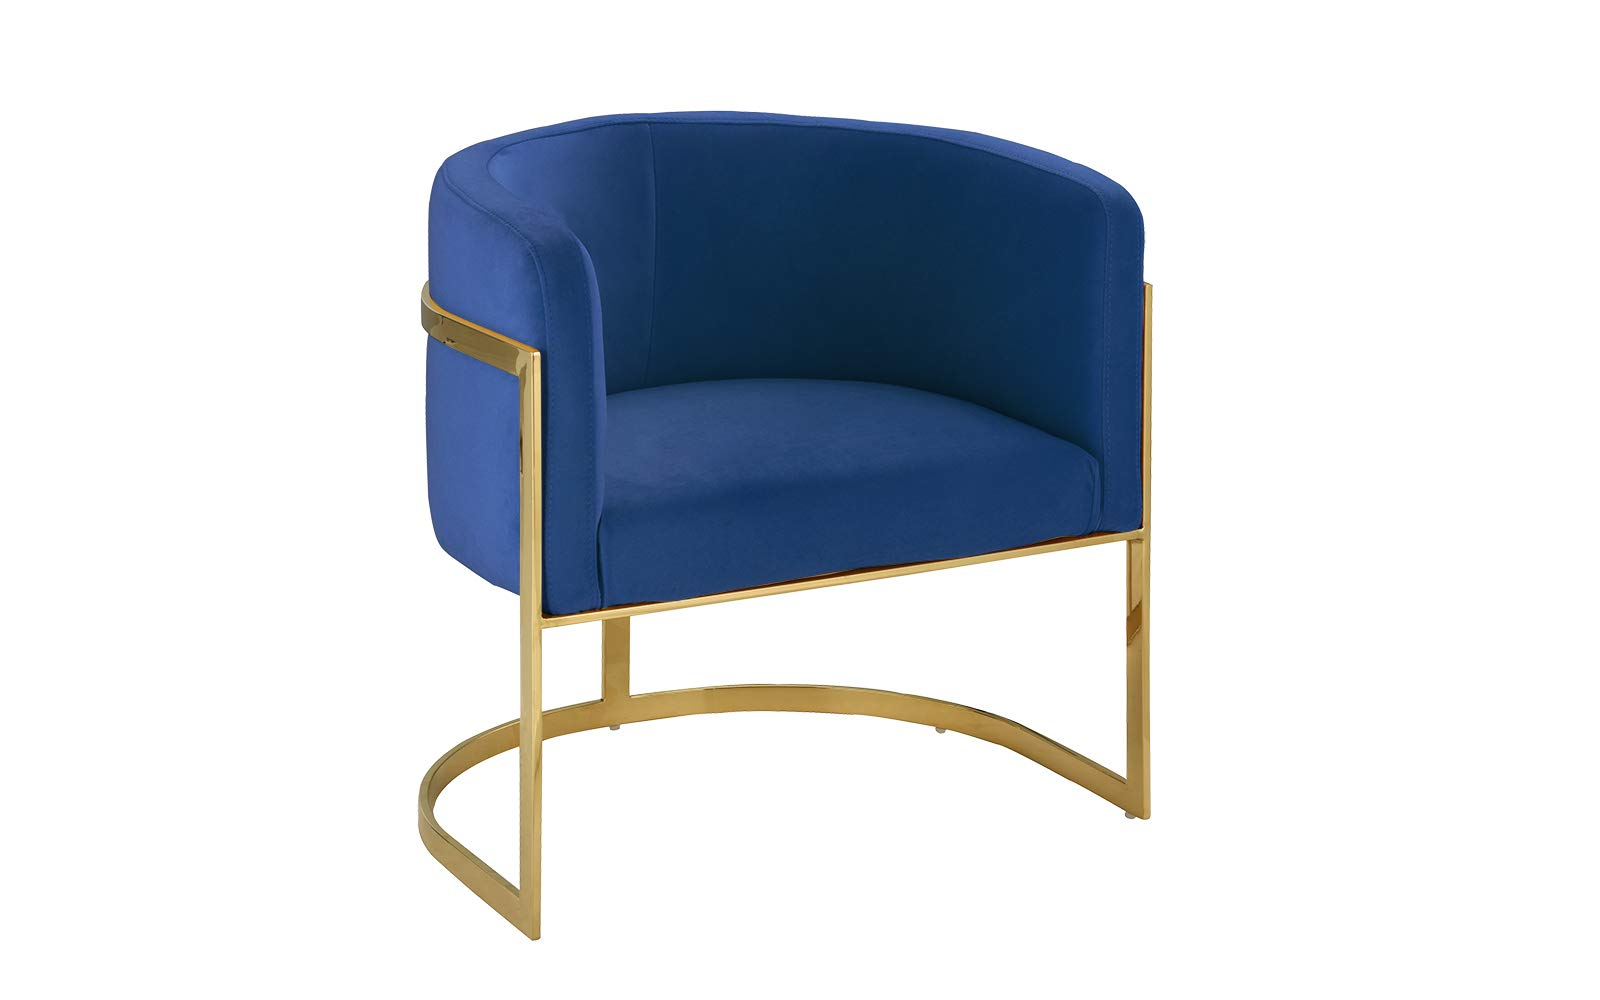 Modern Round Brush Microfiber Living Room Armchair with Gold Legs, Accent Chair (Navy) - Elegant and modern round armchair with round golden base. Upholstered in soft brush microfiber with high density foam filling on seat and back rest. Steel covered in a gold finish and bent around seat to create a round structure to hold seat in place. - living-room-furniture, living-room, accent-chairs - 51NN5t58EXL -